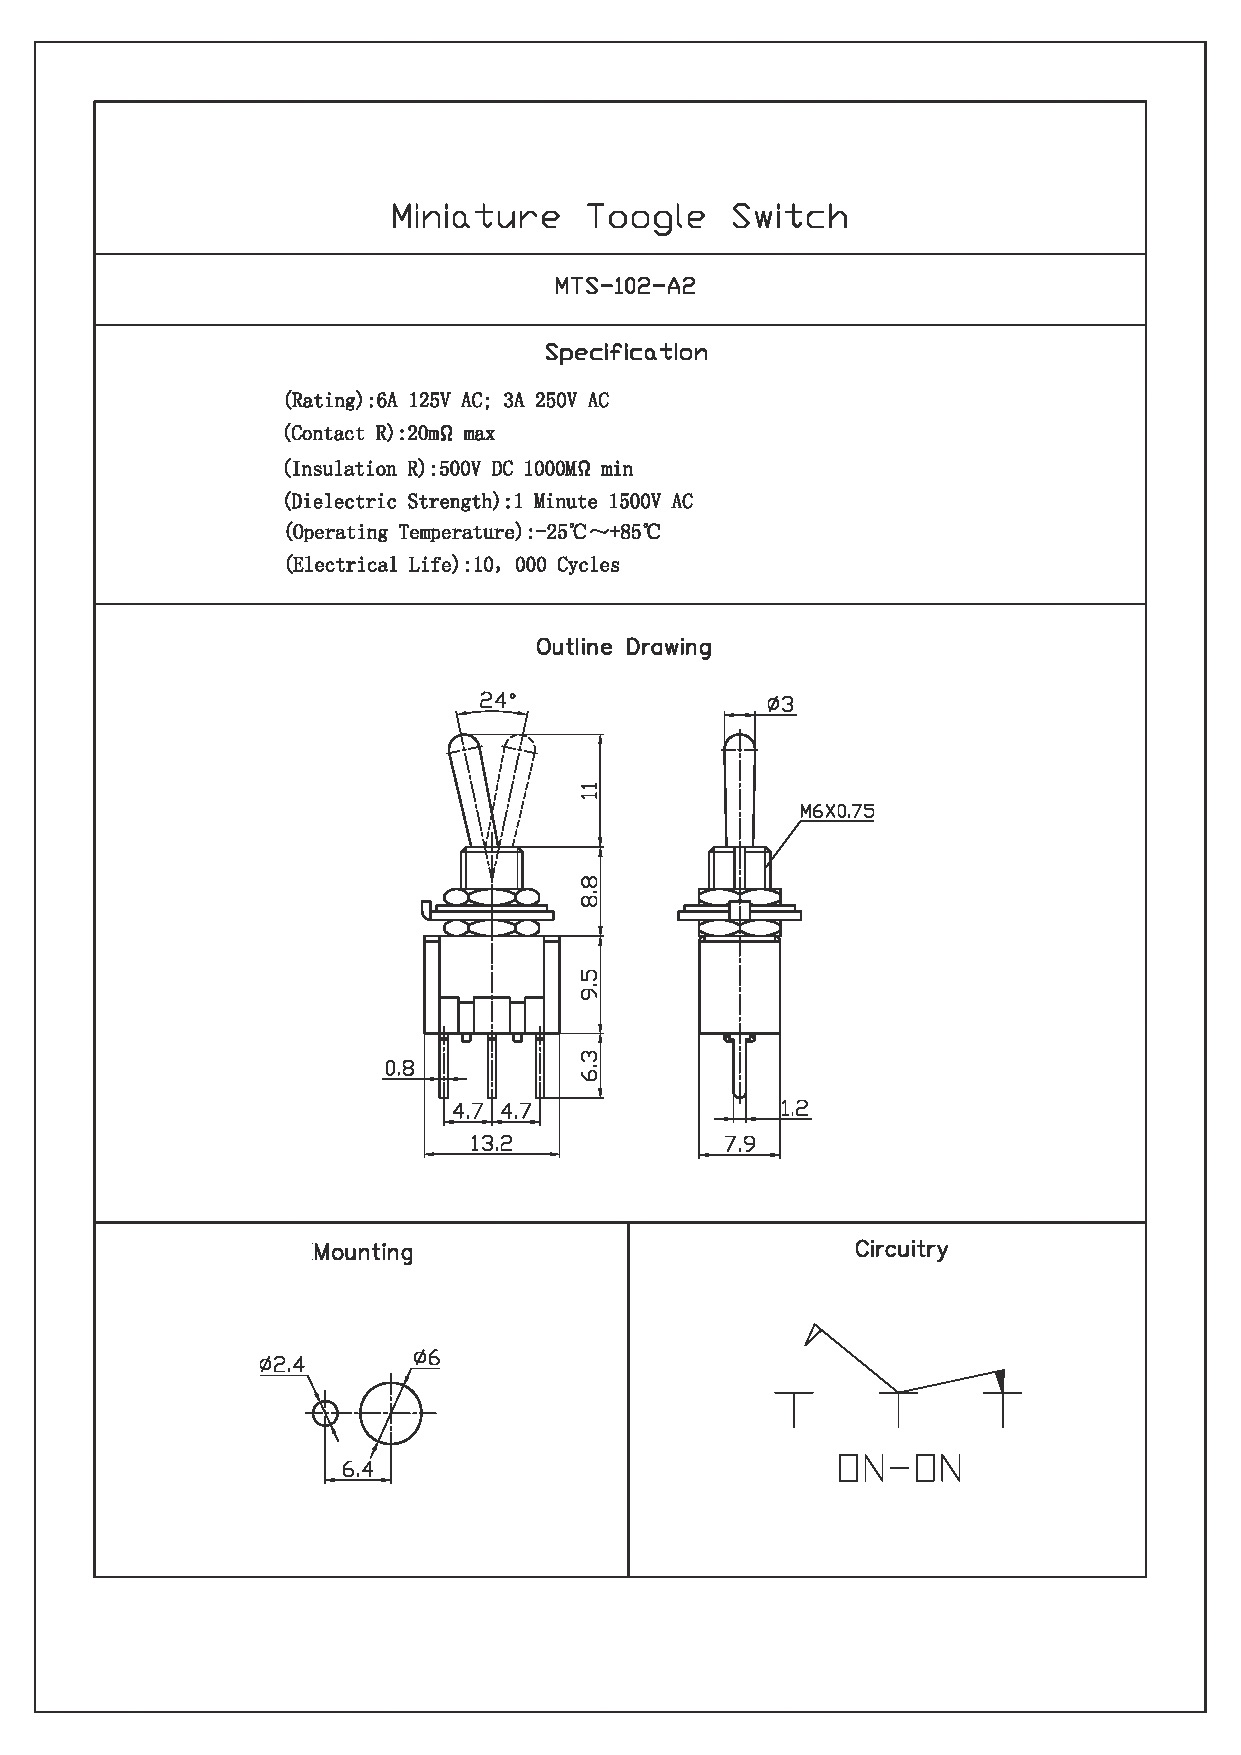 Spdt On Toggle Switch Long Pcb Pin 125v Wiring Diagram Quick View